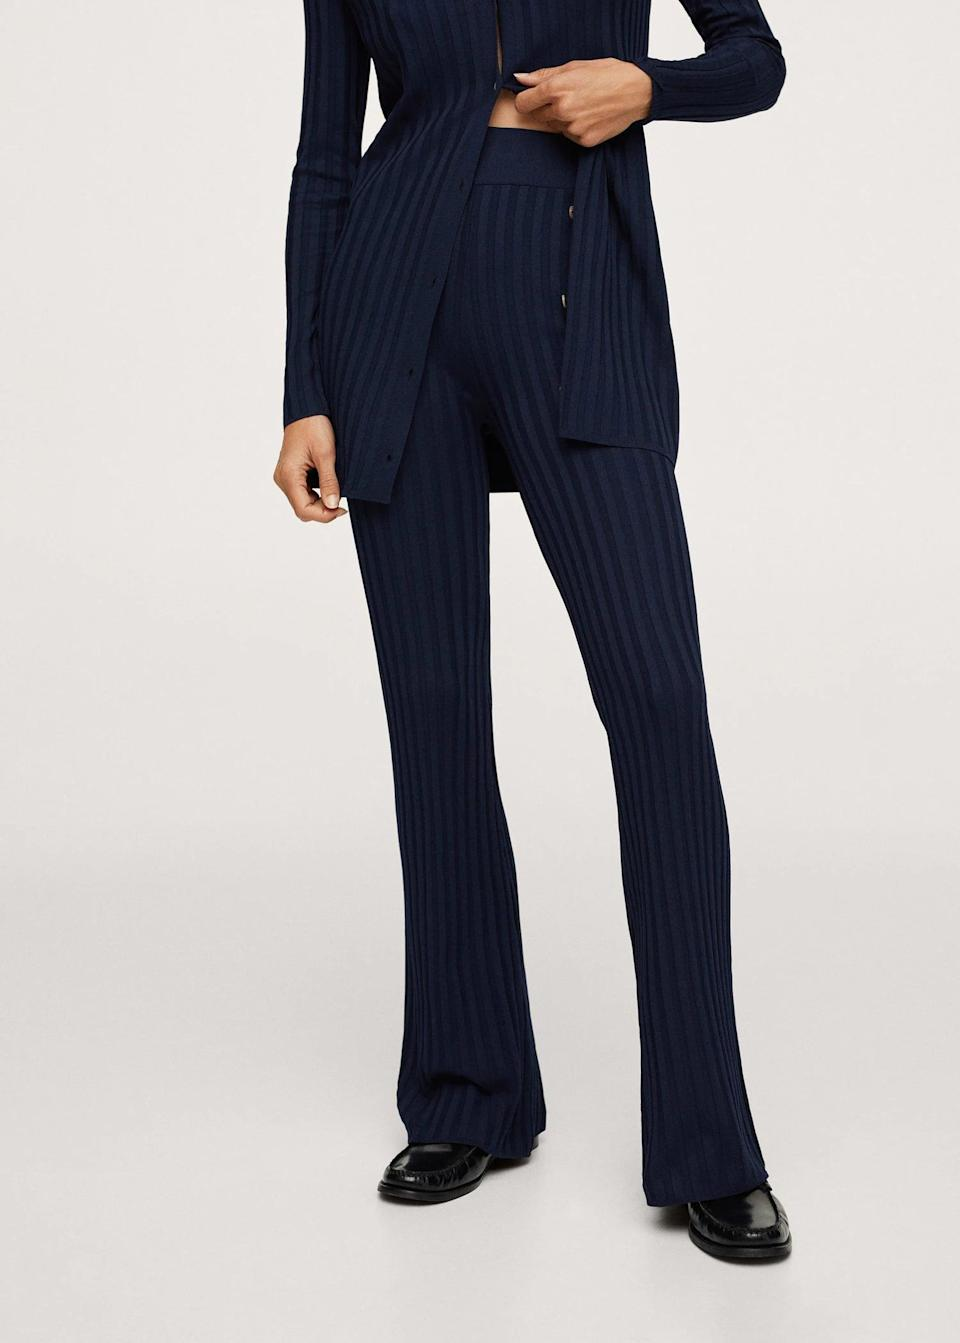 <p>These <span>Ribbed Knit Trousers</span> ($60) look so luxurious, they are a step above your regular everyday pants. The refined look and versatile color will make them your favorite to wear at home or to make an elegant statement somewhere.</p>